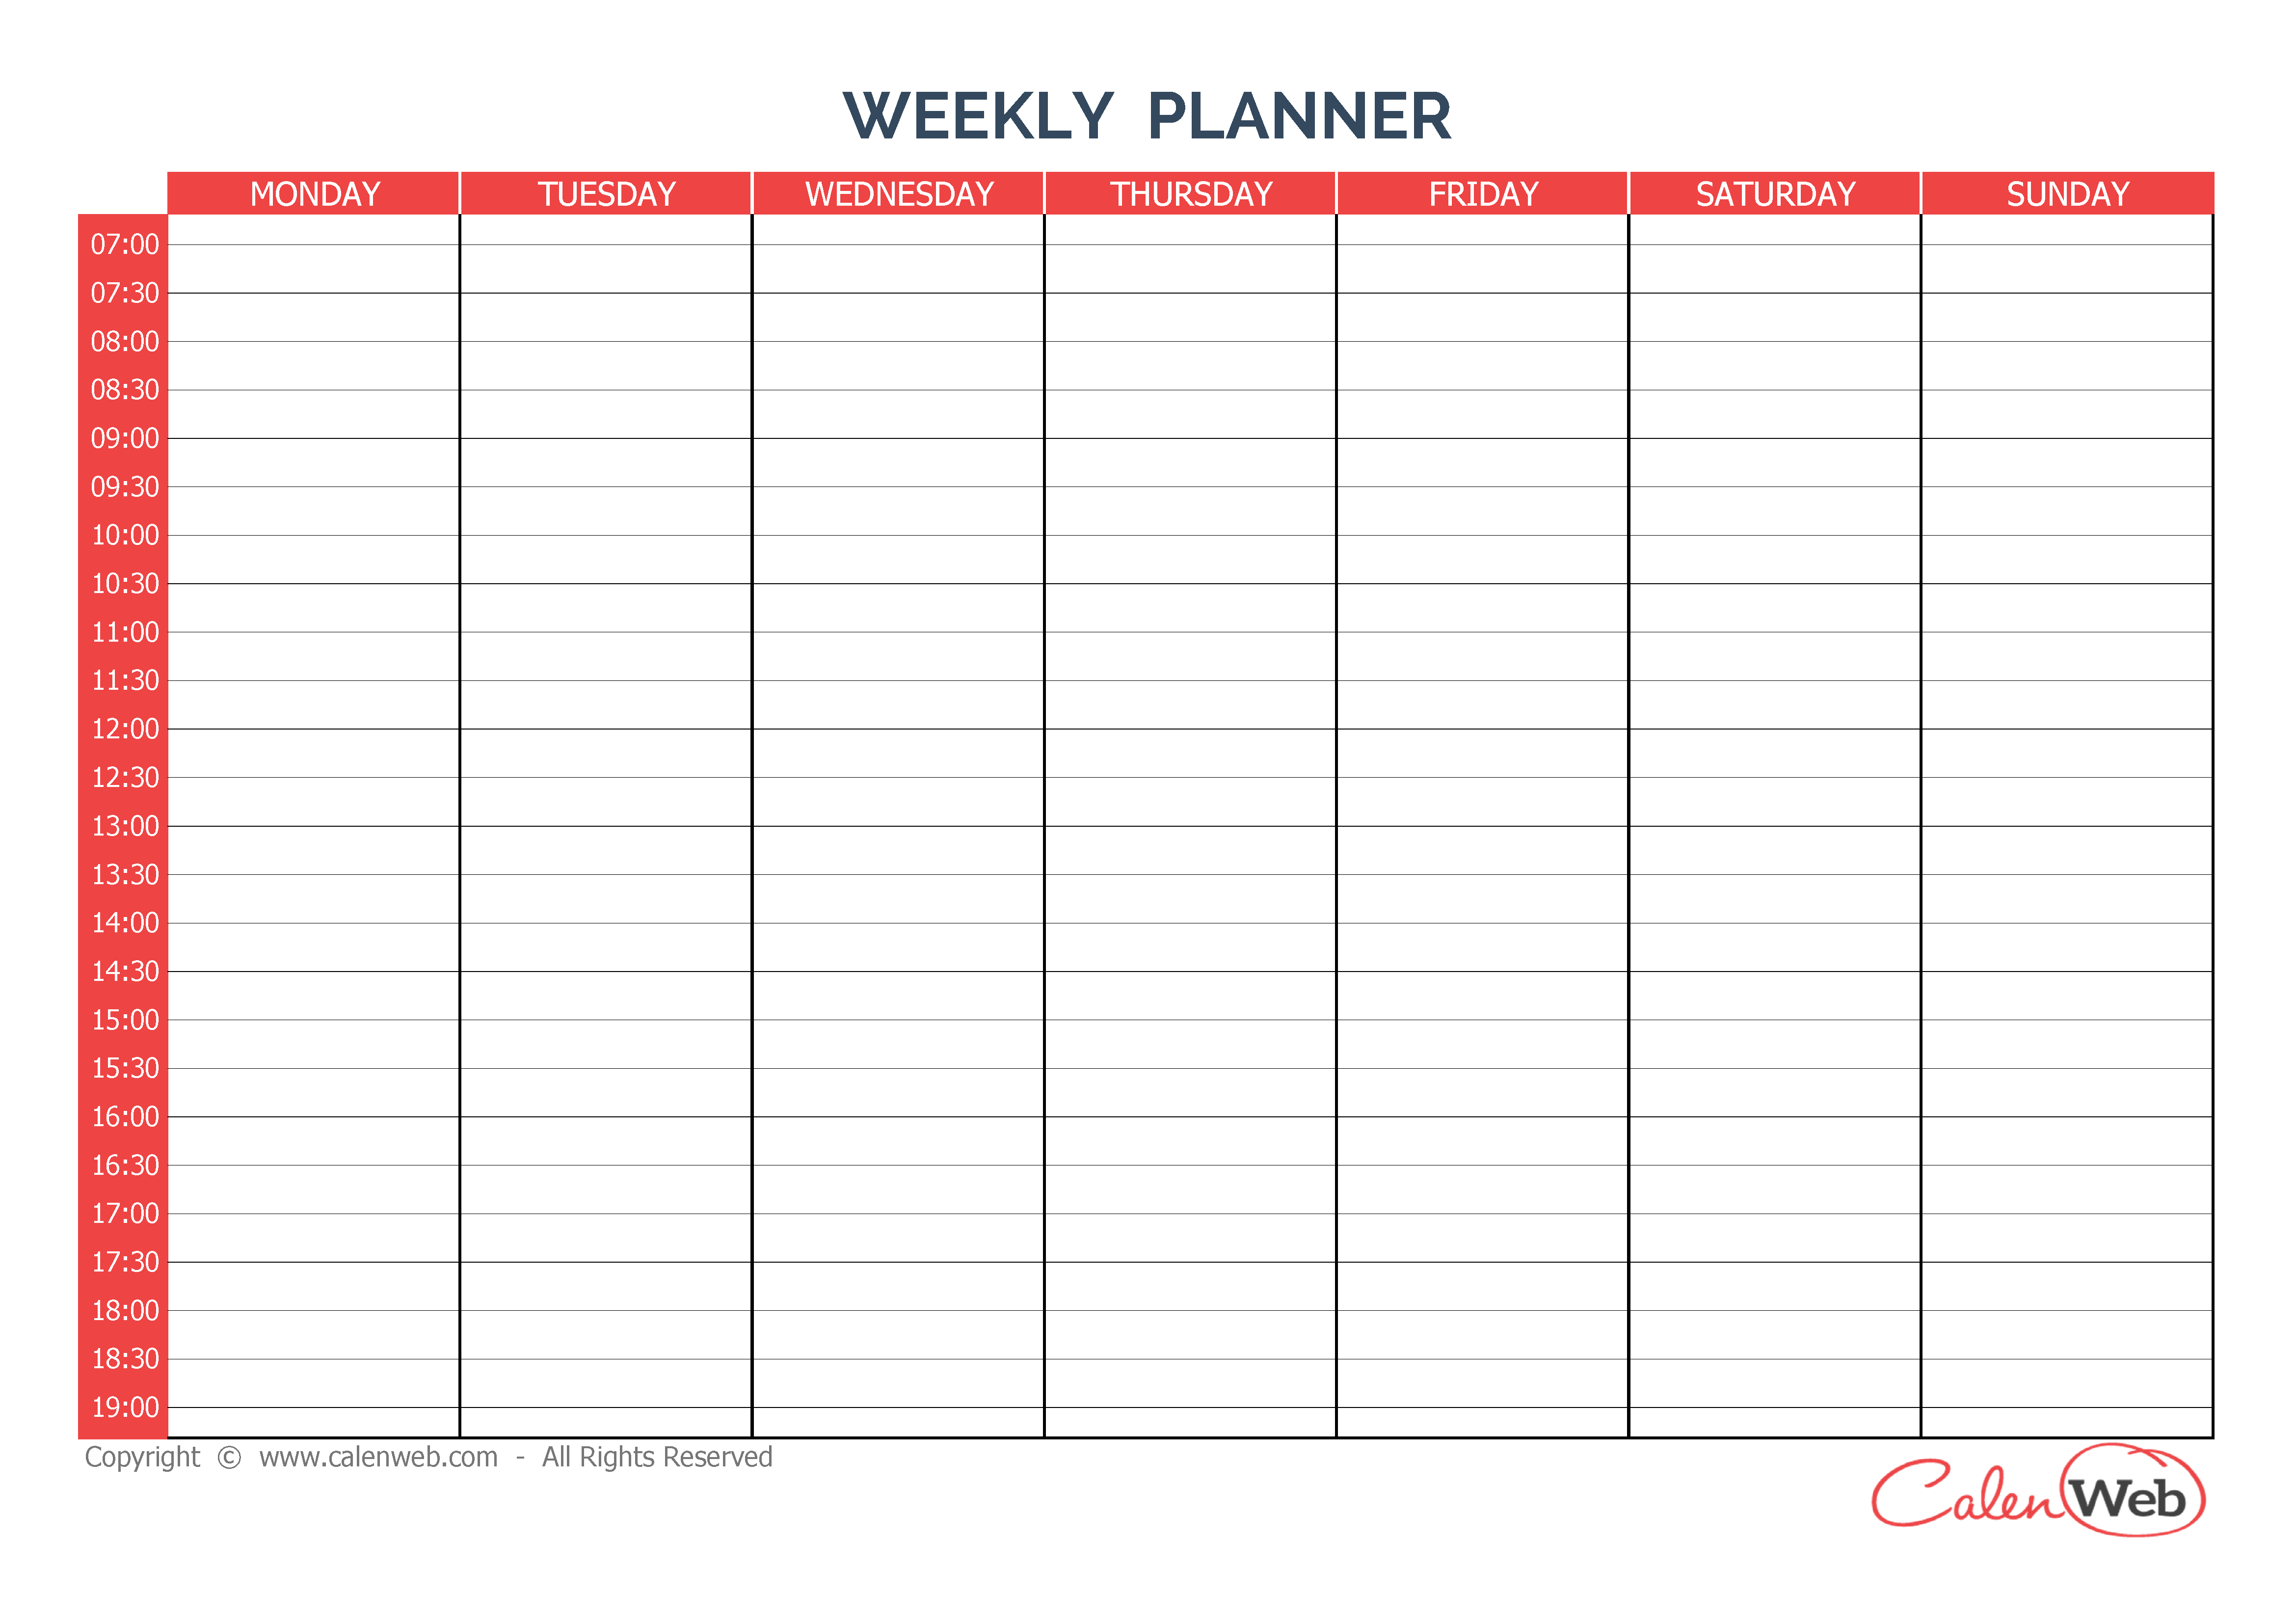 Day 7 Weekly Planner Template | Day Weekly Planner Printable